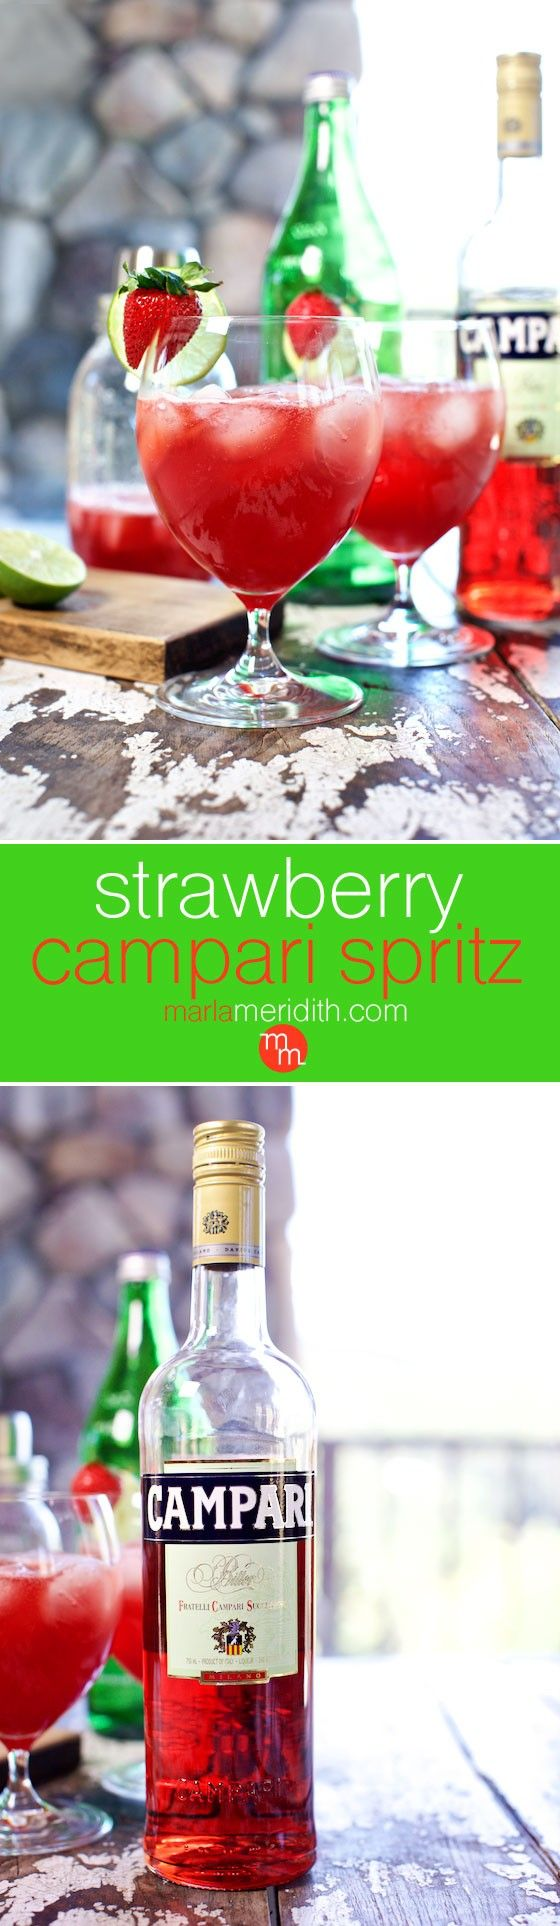 Strawberry Campari Spritz, a refreshing cocktail inspired by my trip to Italy. MarlaMeridith.com ( @marlameridith )